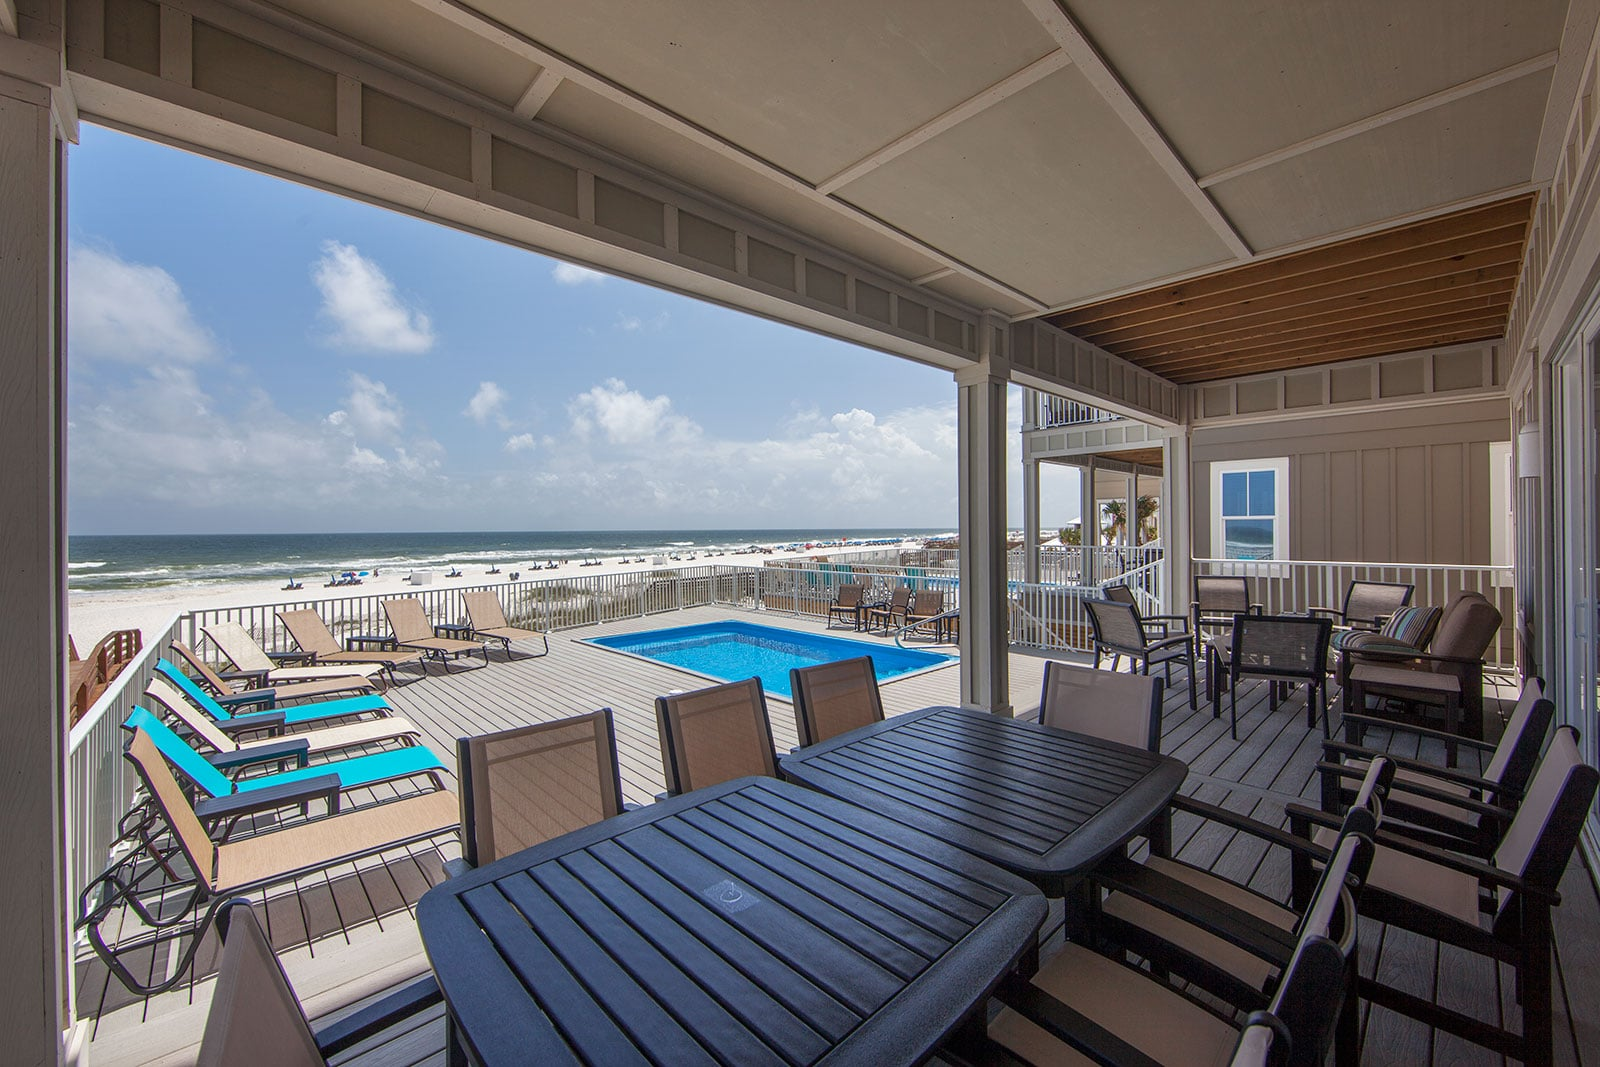 Endurance Beach House Gulf Shores Part - 45: Two Brand New (2015) Gulf Shores Vacation Homes At The Cottages At Romar In  Orange Beach, Alabama.